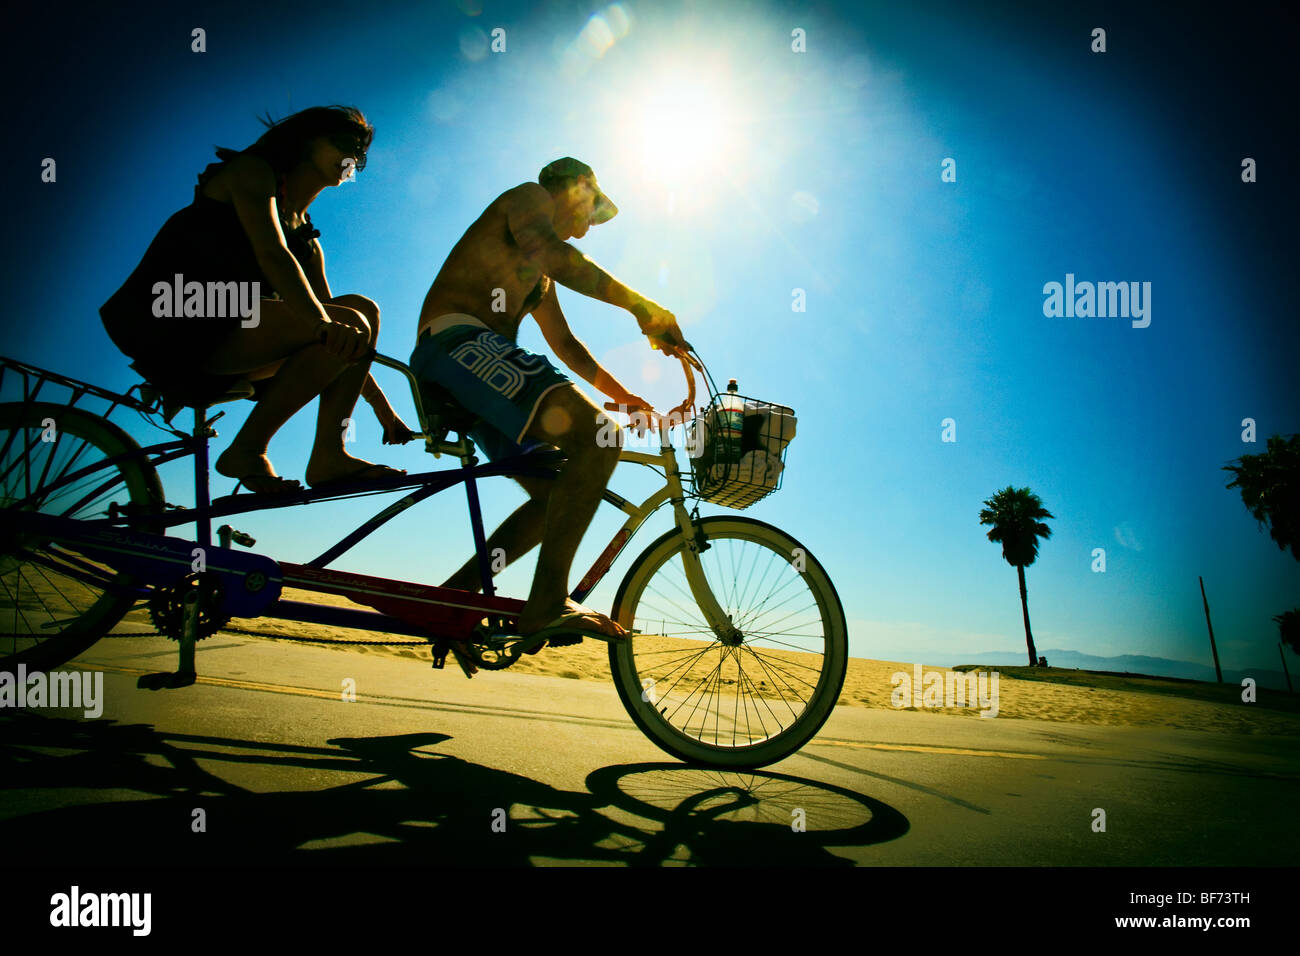 Tandem Bicycle riding, Venice Beach, Los Angeles County, California, United States of America - Stock Image